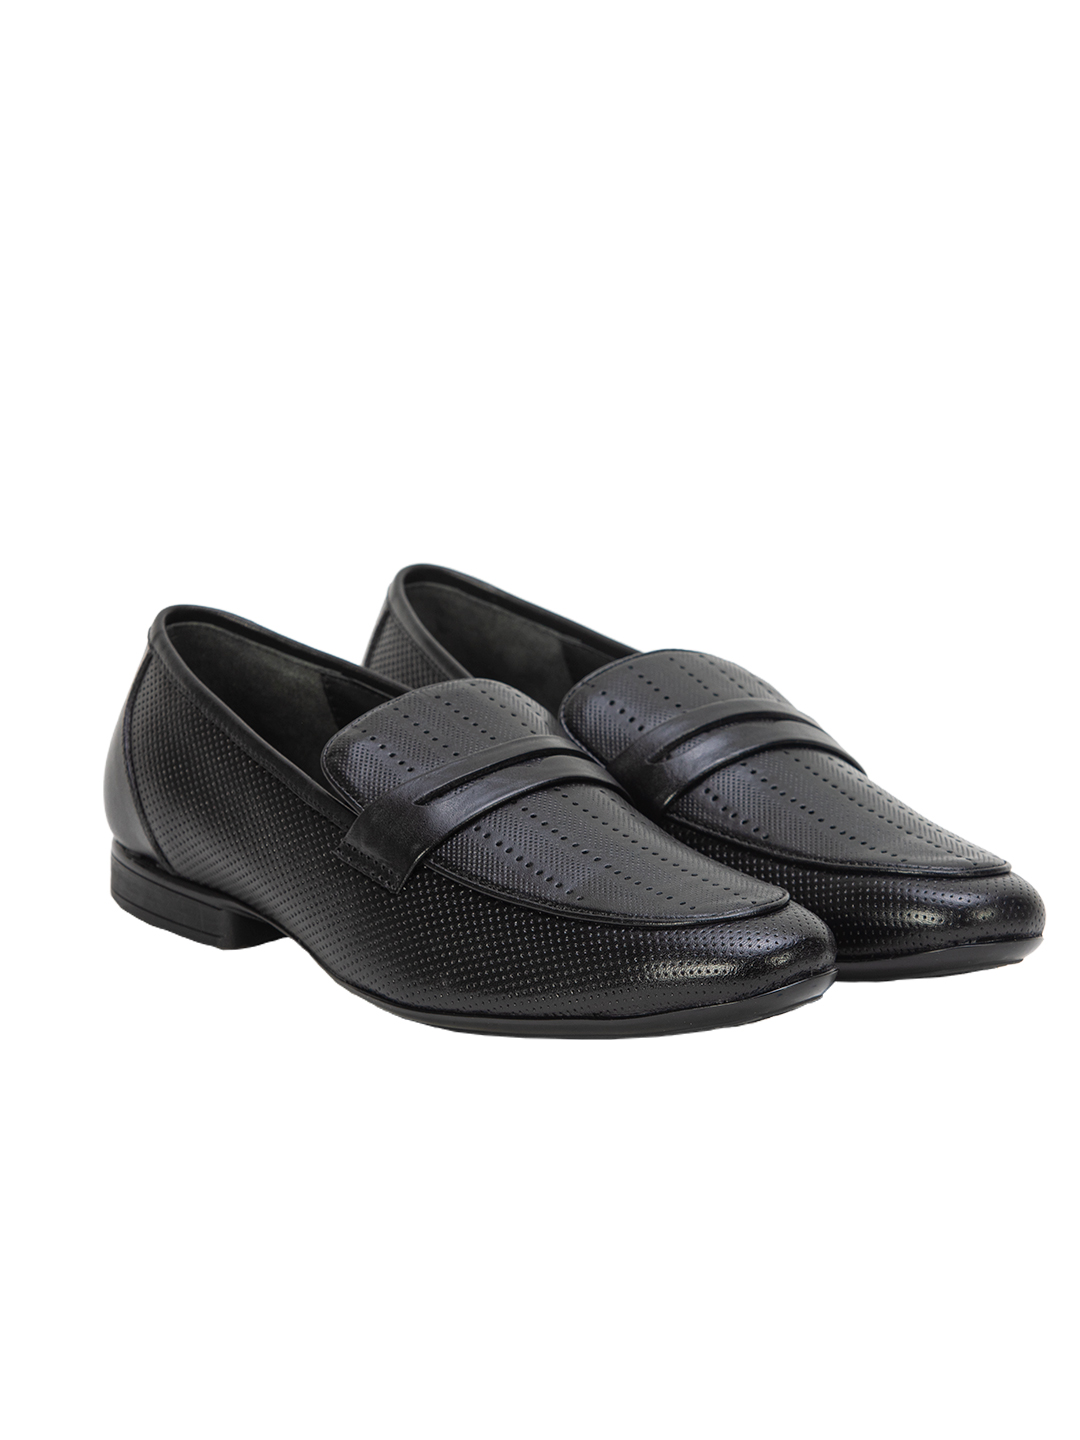 Buy Von Wellx Germany Comfort Black Matteo Shoes Online in Patna